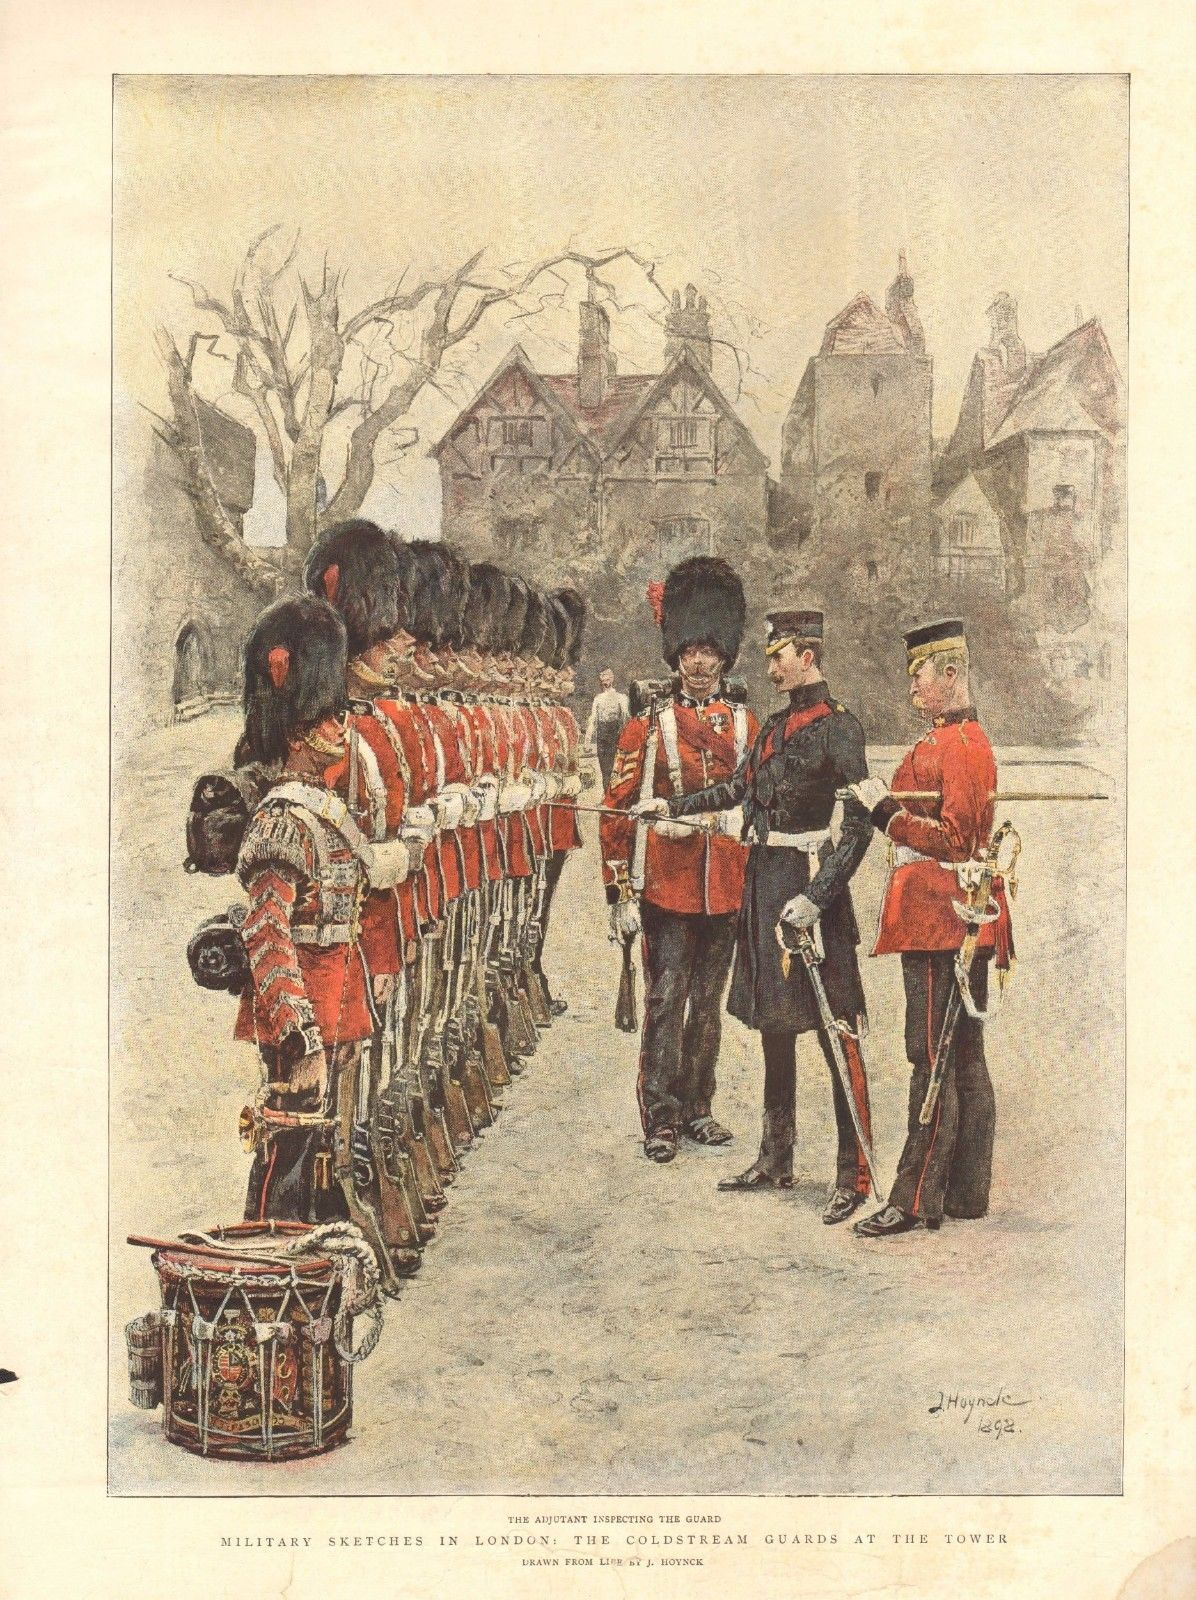 British; Coldstream Guards, Adjutant inspecting the guard at the Tower of London, 1898